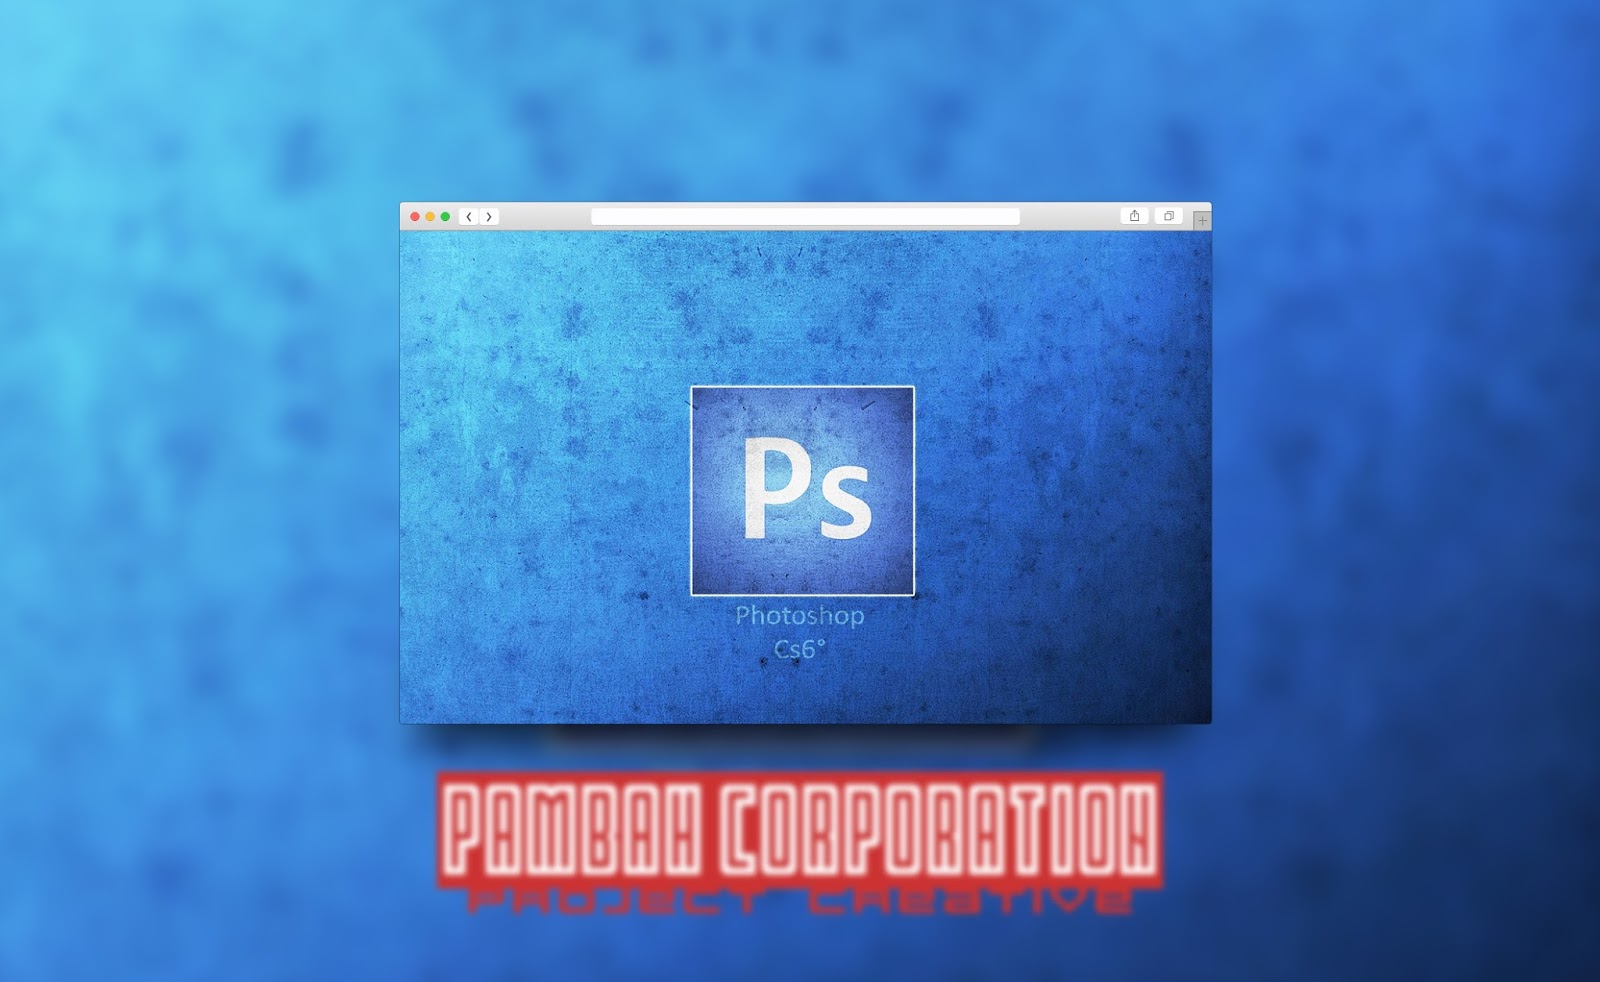 Download Photoshop Portable full link chuẩn tổng hợp ...